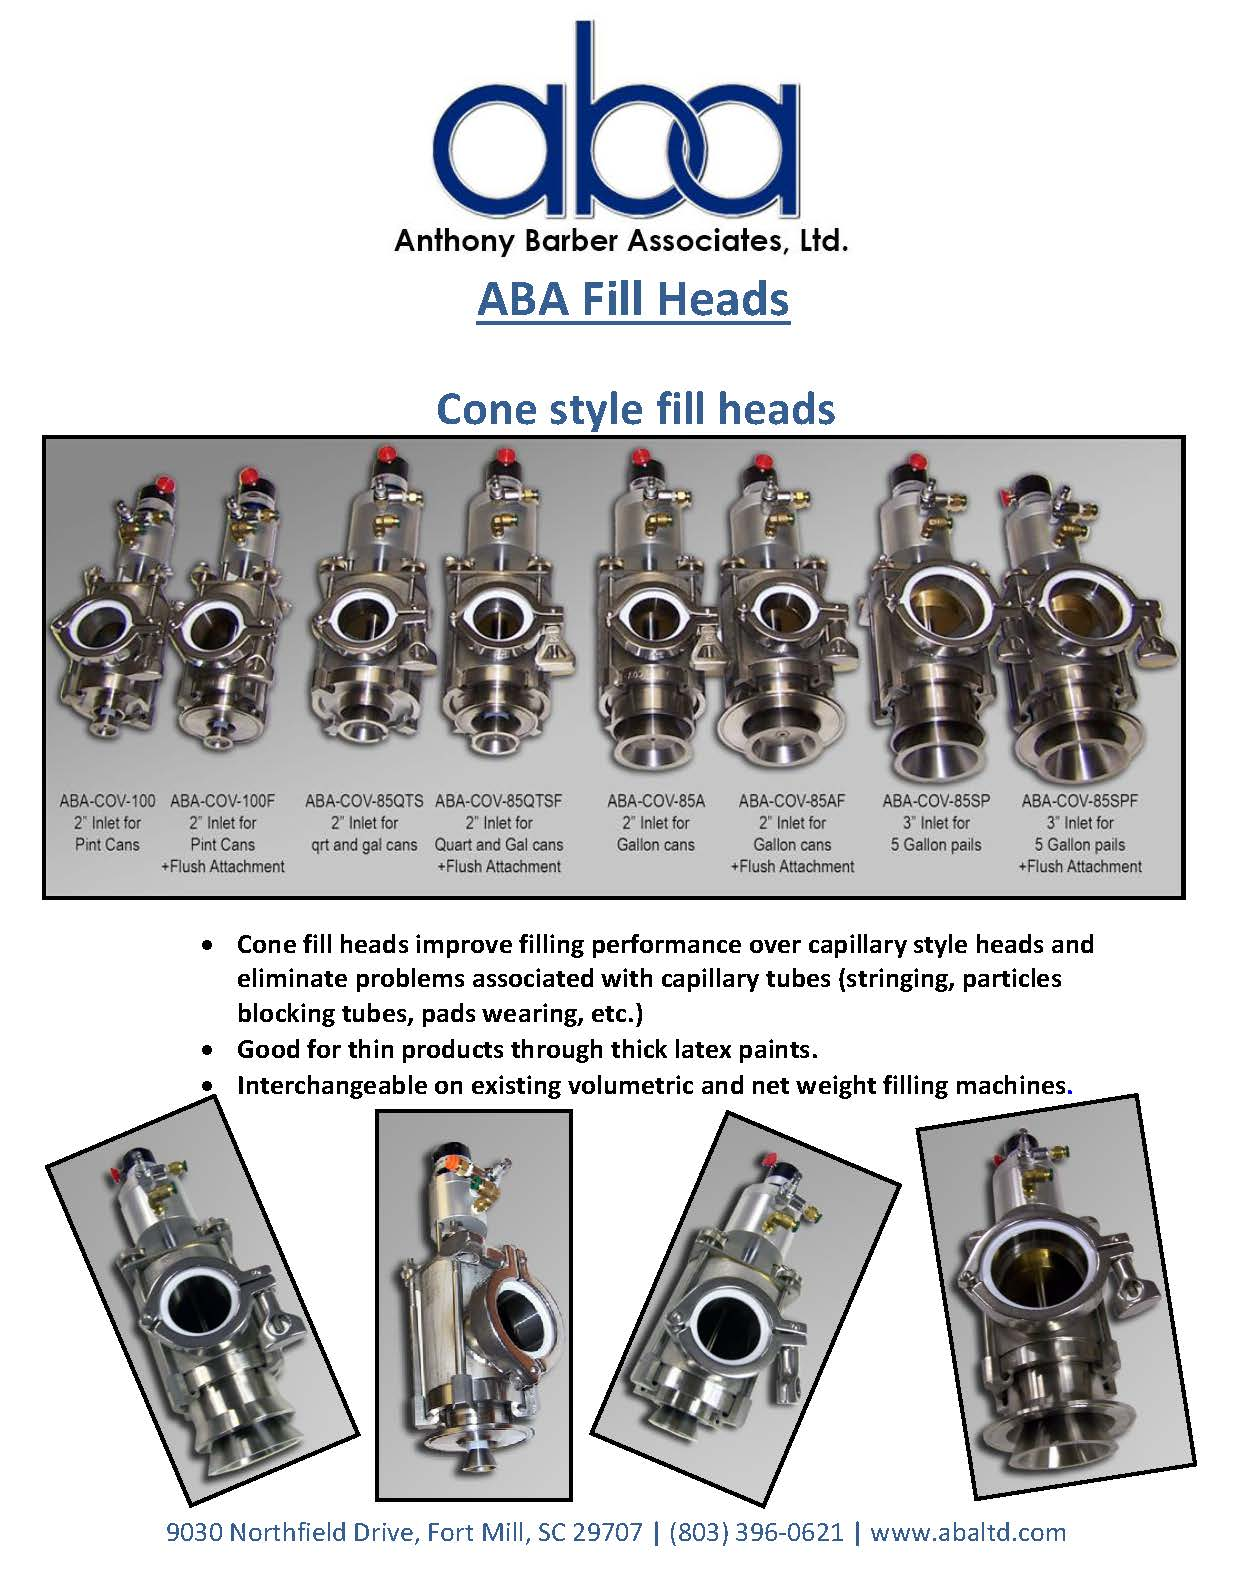 ABA Fill Heads - cone style